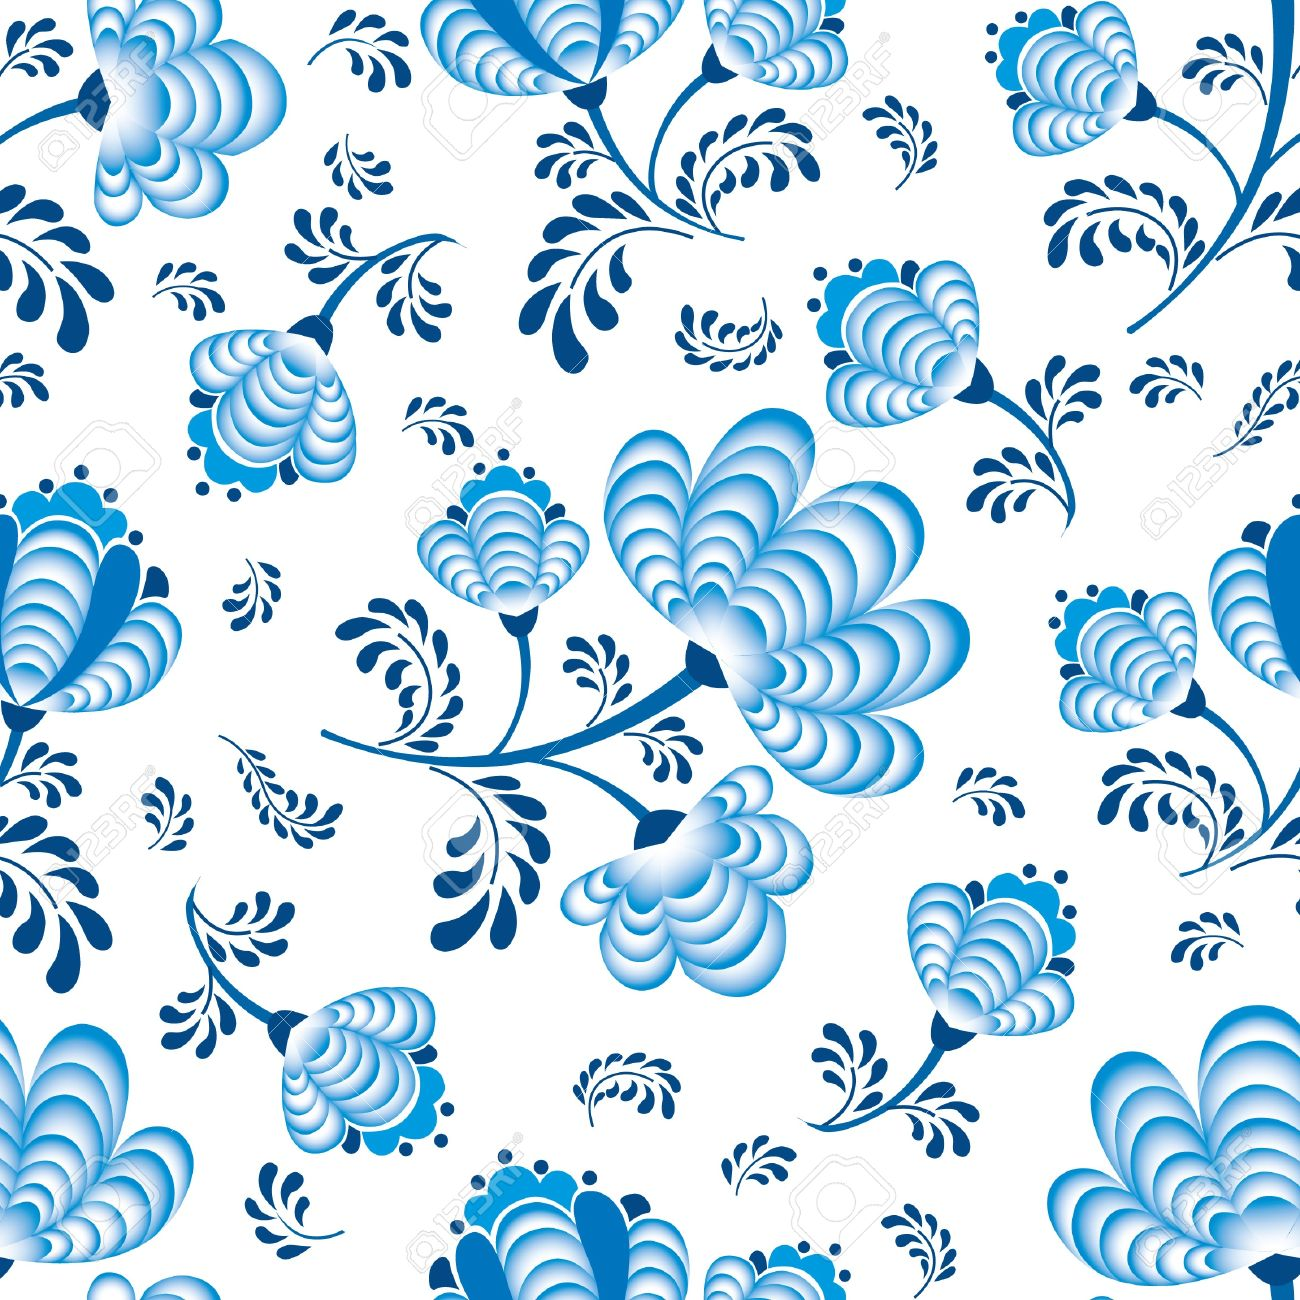 Abstract Floral Seamless Pattern Blue Flowers On White Background In Russian Style Gzhel Stock Vector